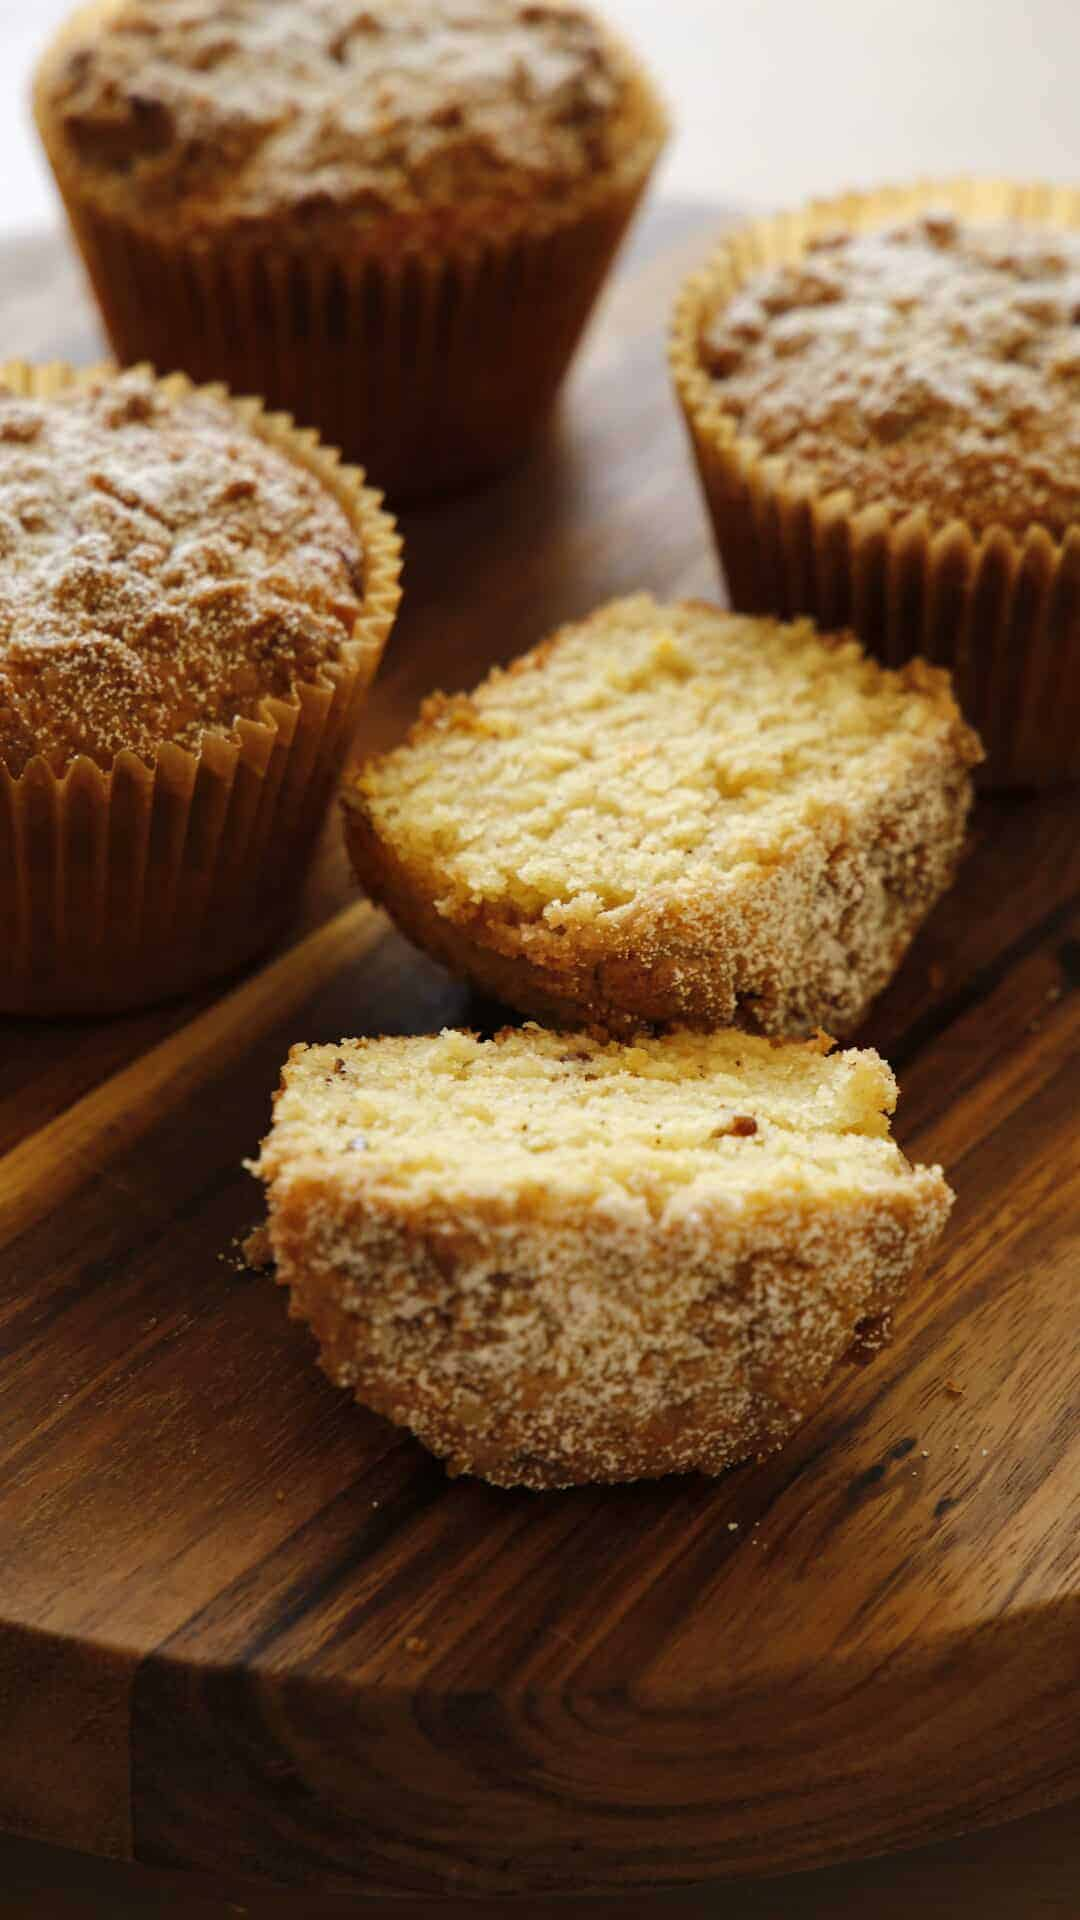 Tight Shot of Crumb Muffin Open Showing Texture